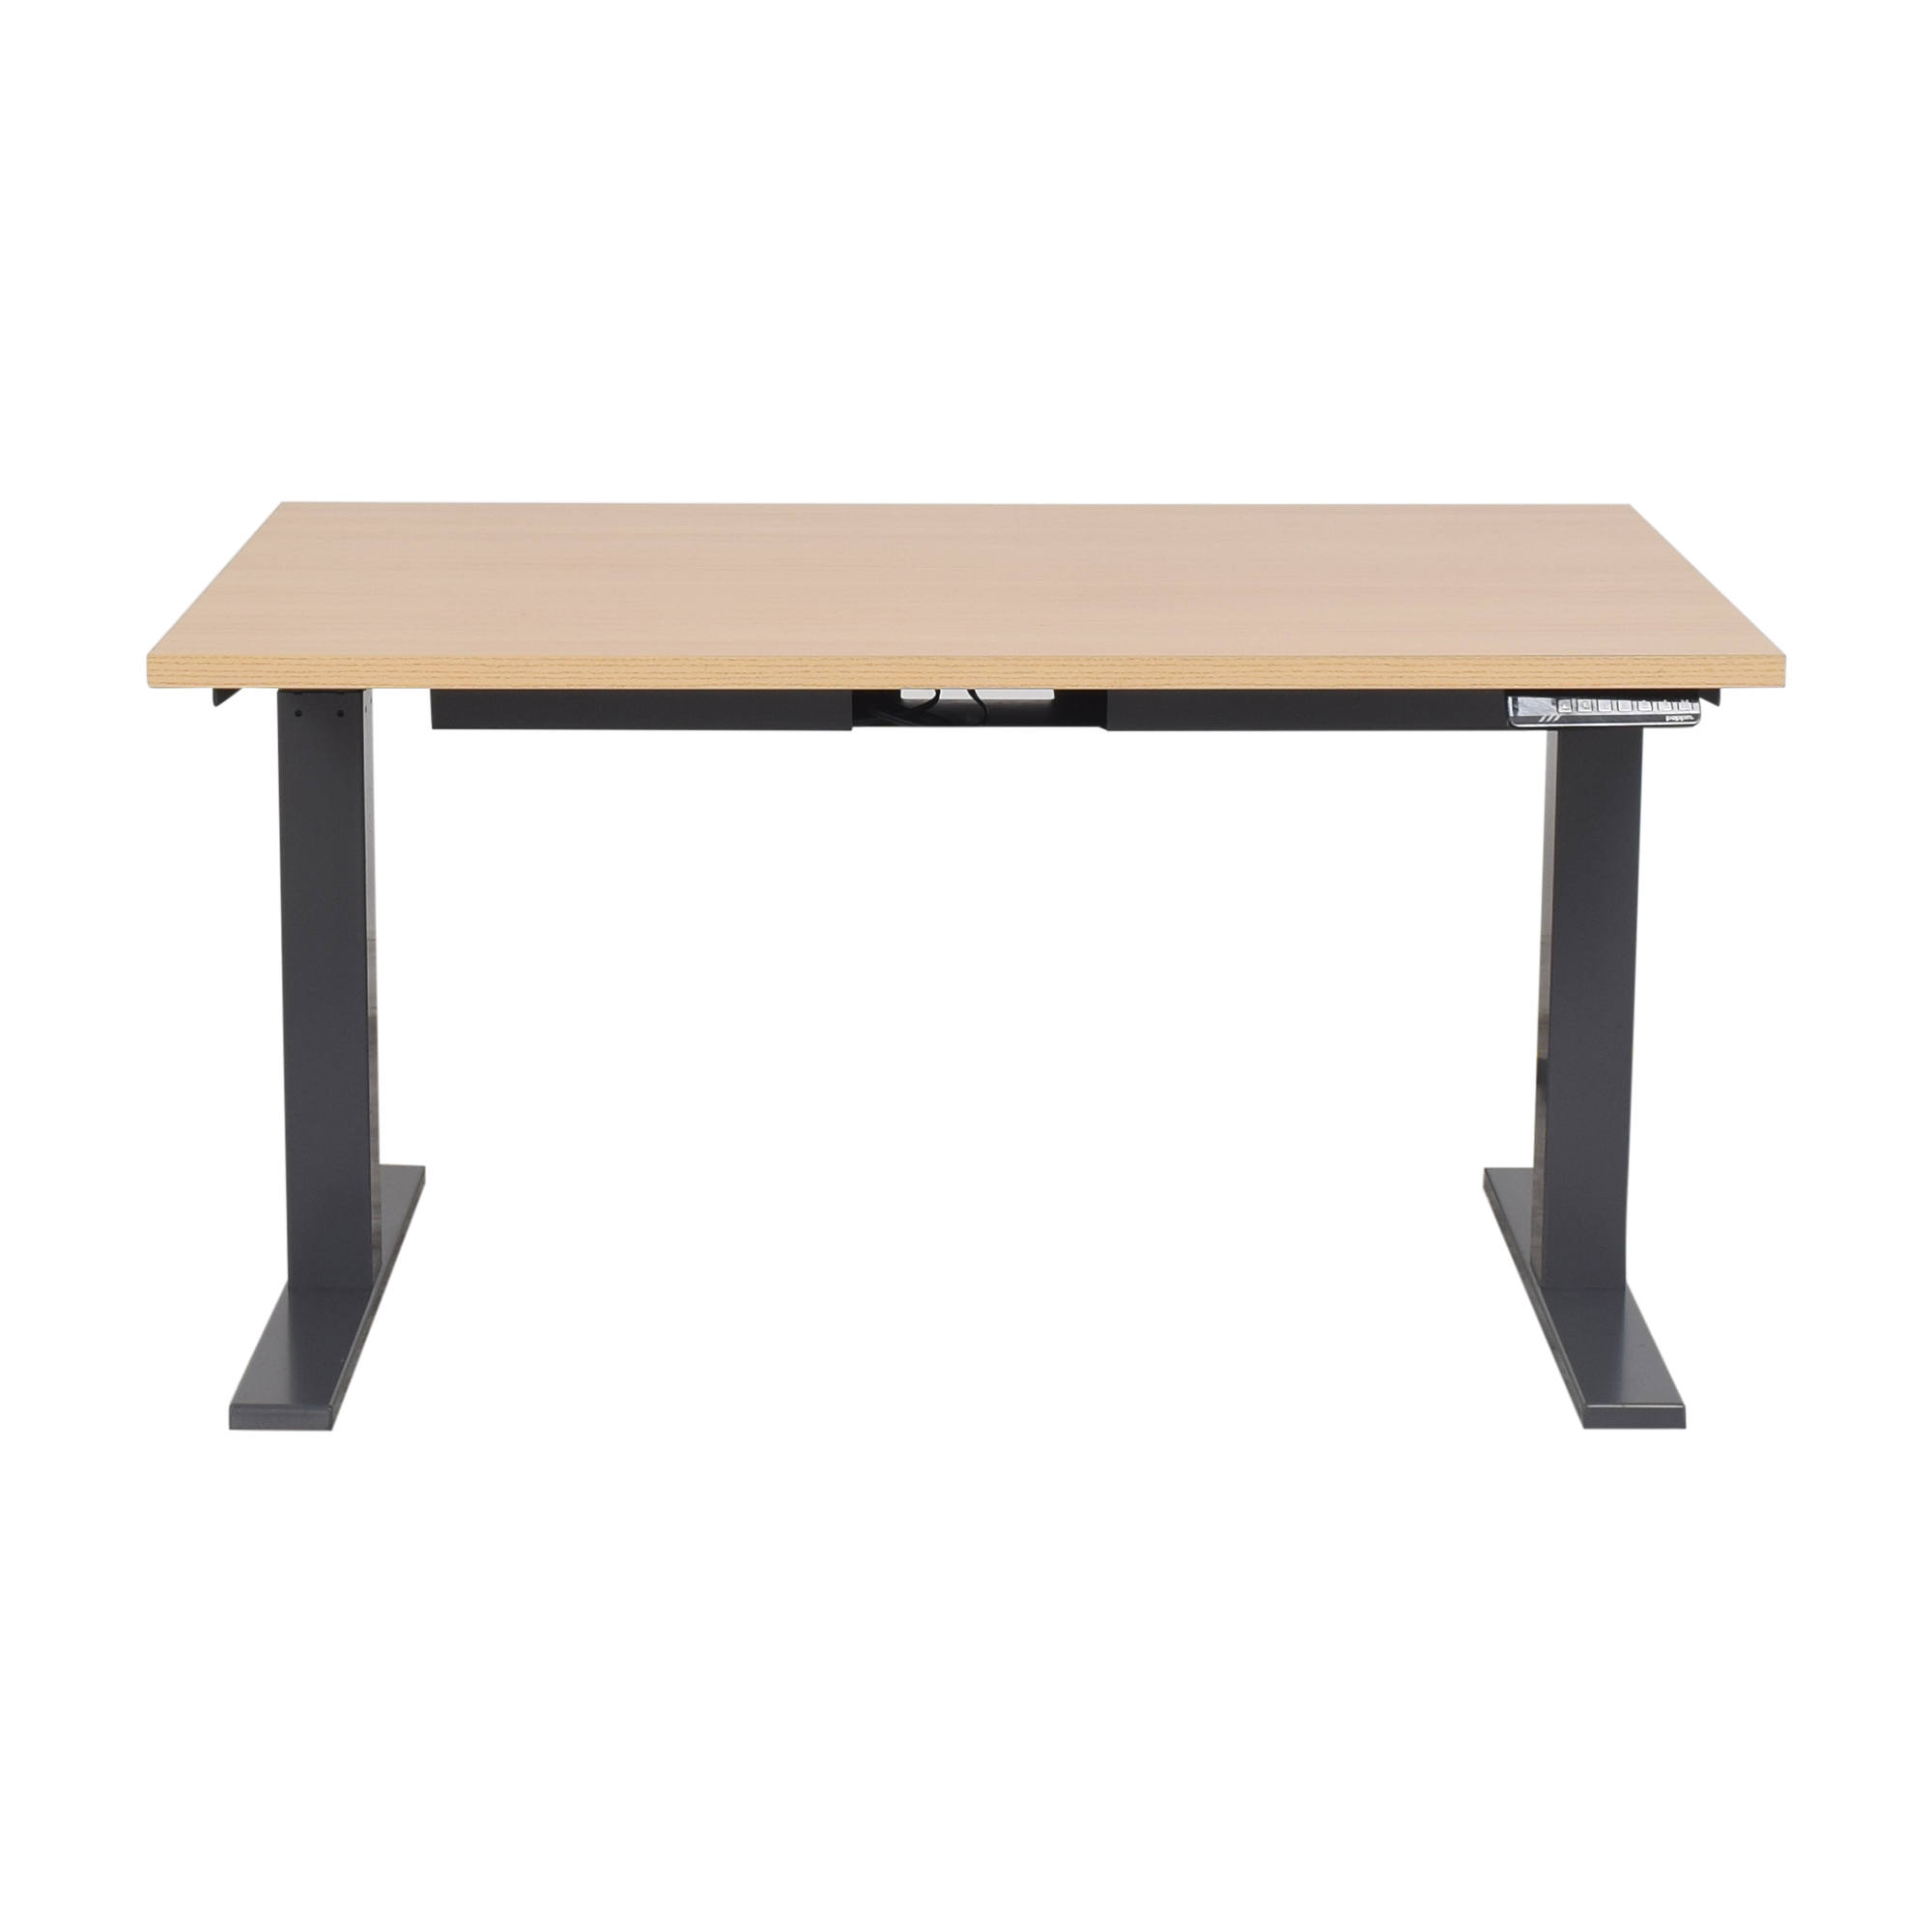 Poppin Poppin Series L Adjustable Height Desk ma